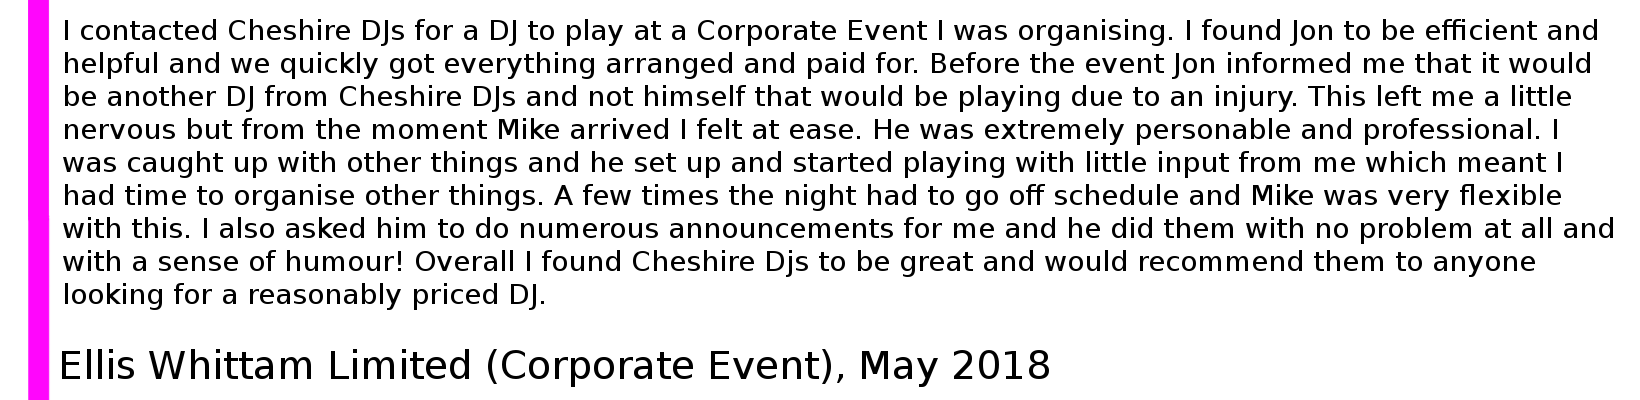 I contacted Cheshire DJs for a DJ to play at a Corporate Event I was organising. I found Jon to be efficient and helpful and we quickly got everything arranged and paid for. Before the event Jon informed me that it would be another DJ from Cheshire DJs and not himself that would be playing due to an injury. This left me a little nervous but from the moment Mike arrived I felt at ease. He was extremely personable and professional. I was caught up with other things and he set up and started playing with little input from me which meant I had time to organise other things. A few times the night had to go off schedule and Mike was very flexible with this. I also asked him to do numerous announcements for me and he did them with no problem at all and with a sense of humour! Overall I found Cheshire Djs to be great and would recommend them to anyone looking for a reasonably priced DJ. Cheshire Corporate Event DJ